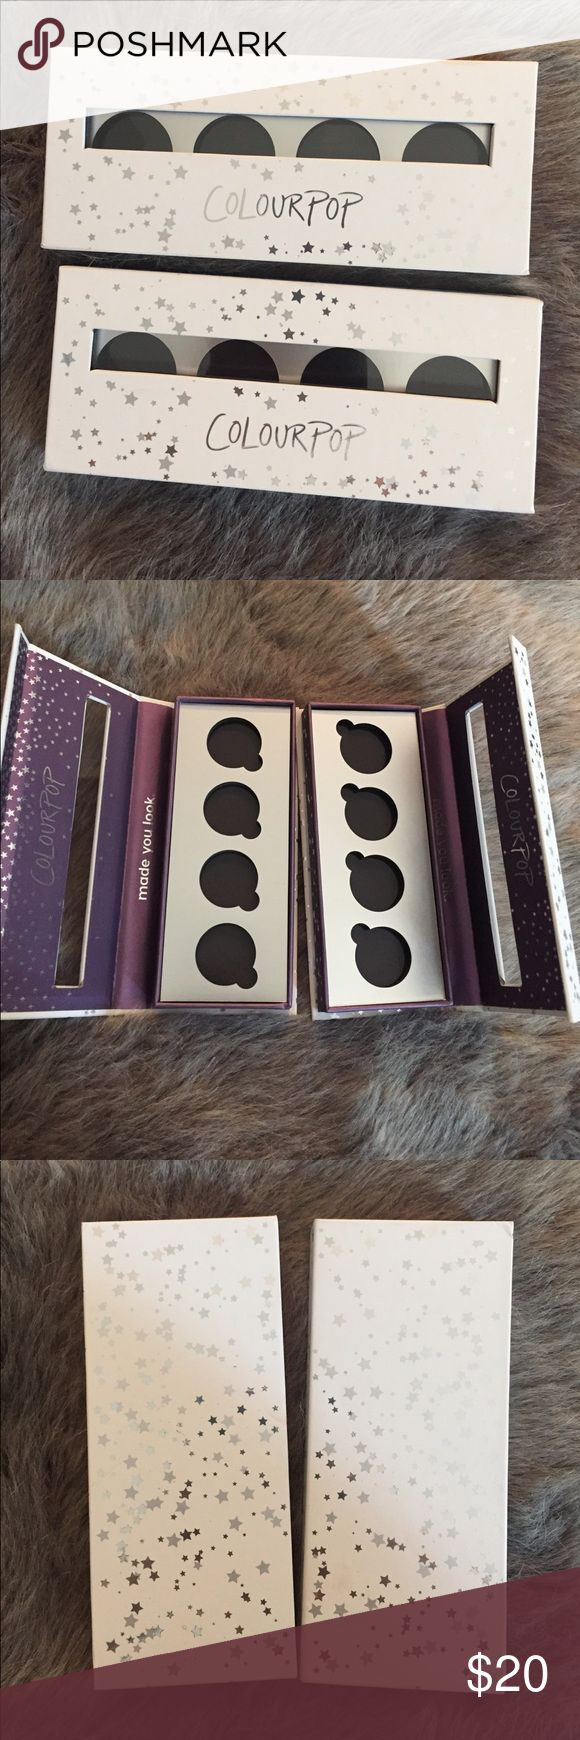 NWT Colourpop empty eyeshadow palettes NWT 2 Colourpop empty eyeshadow palettes Colourpop Makeup